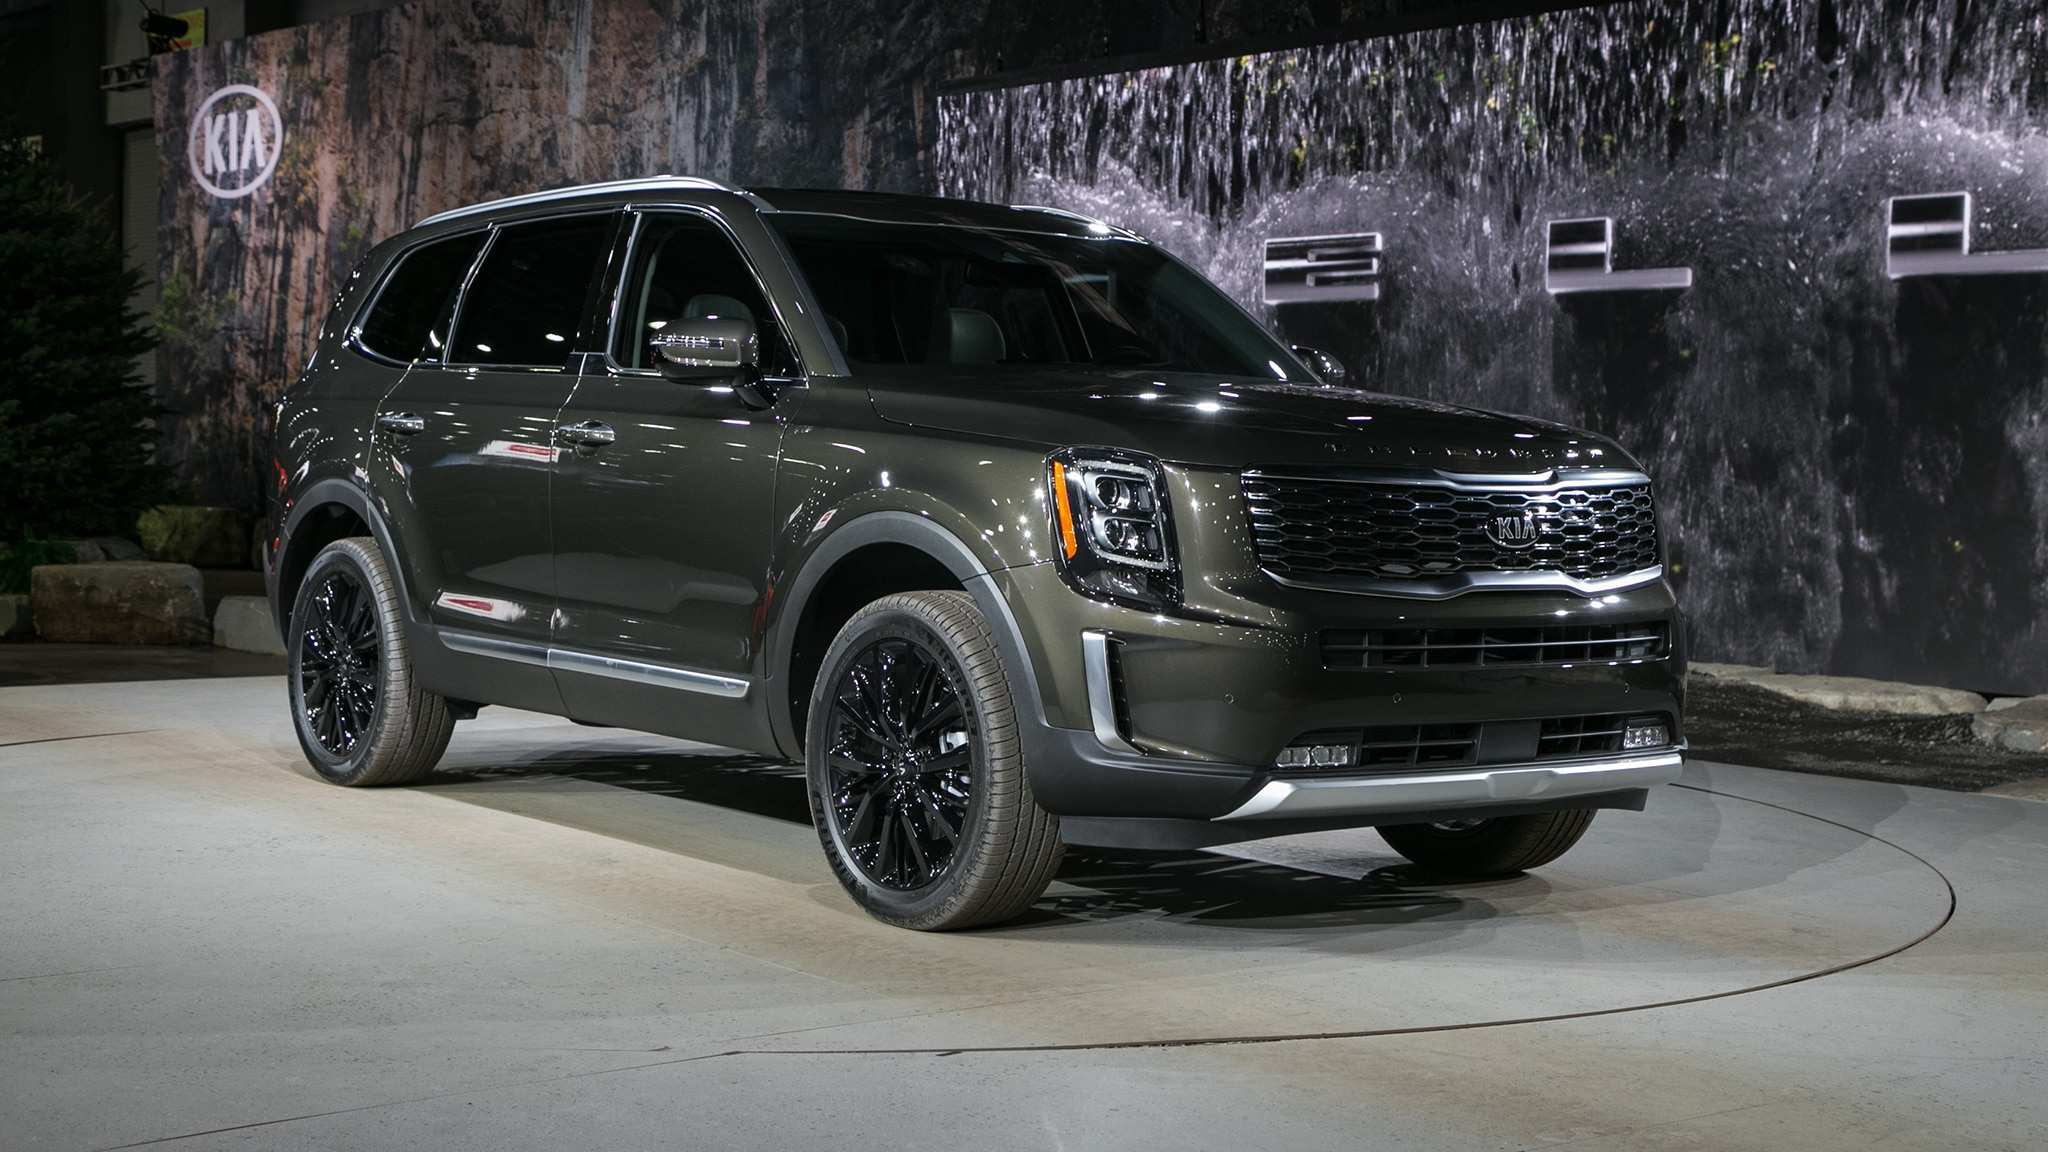 75 Best Review 2020 Kia Telluride Lx Spesification for 2020 Kia Telluride Lx